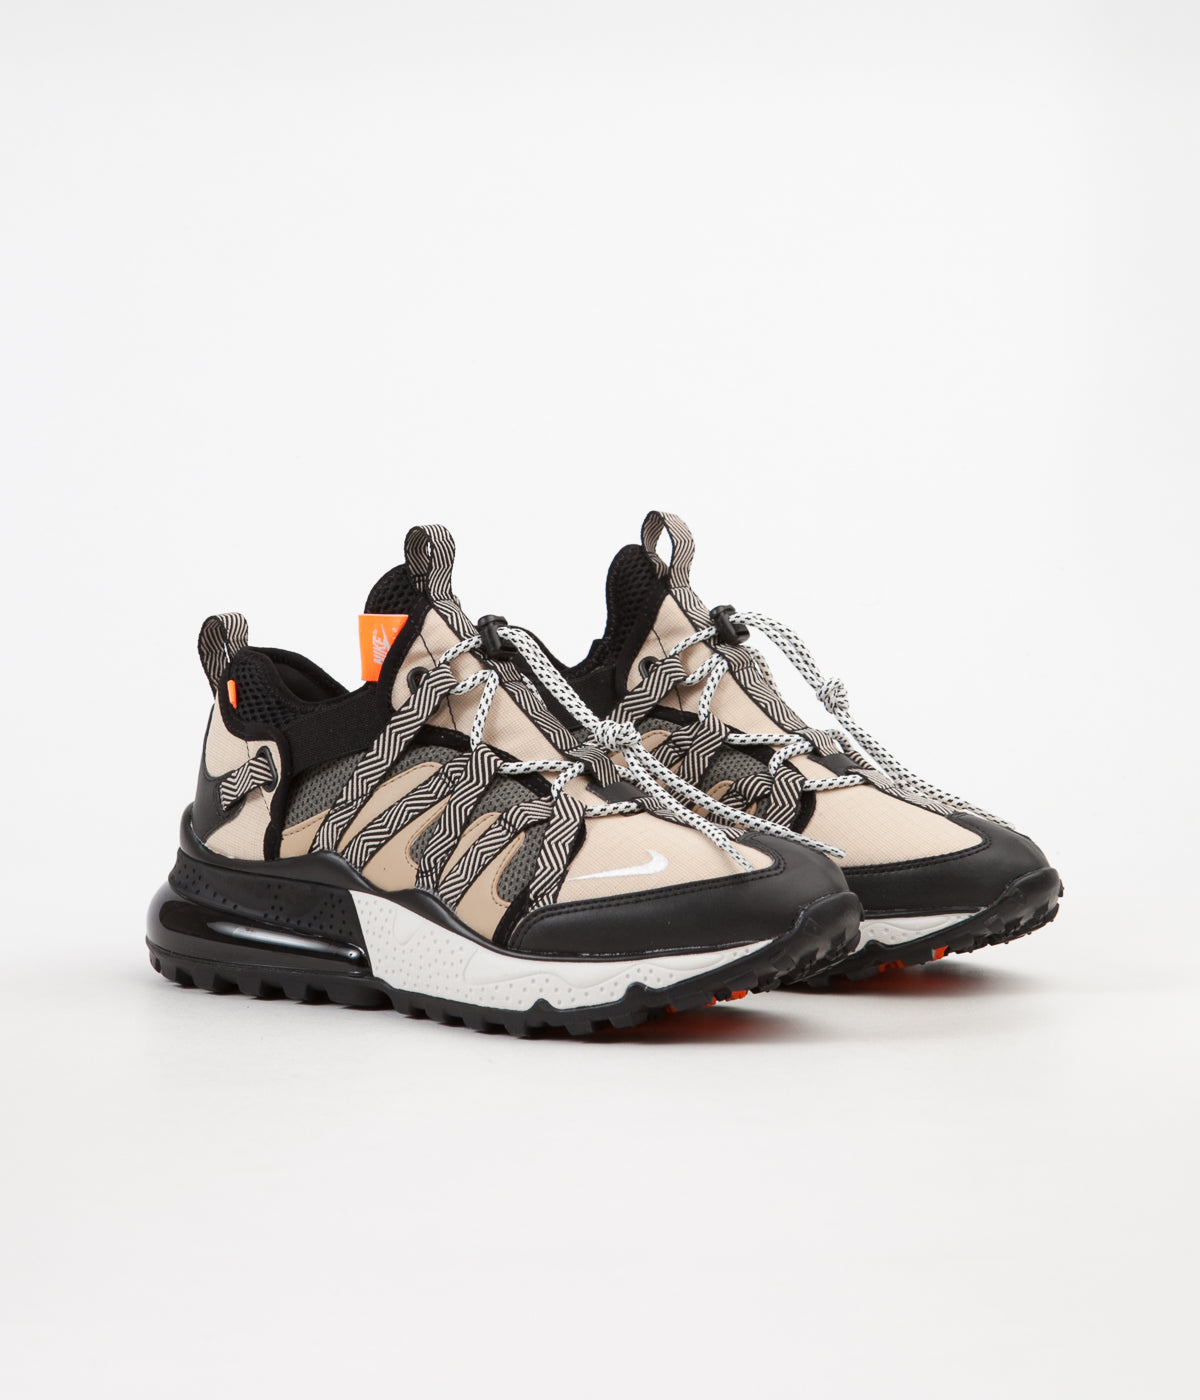 buy popular ef2d7 fce07 Nike Air Max 270 Bowfin Shoes - Black / Phantom - Desert ...